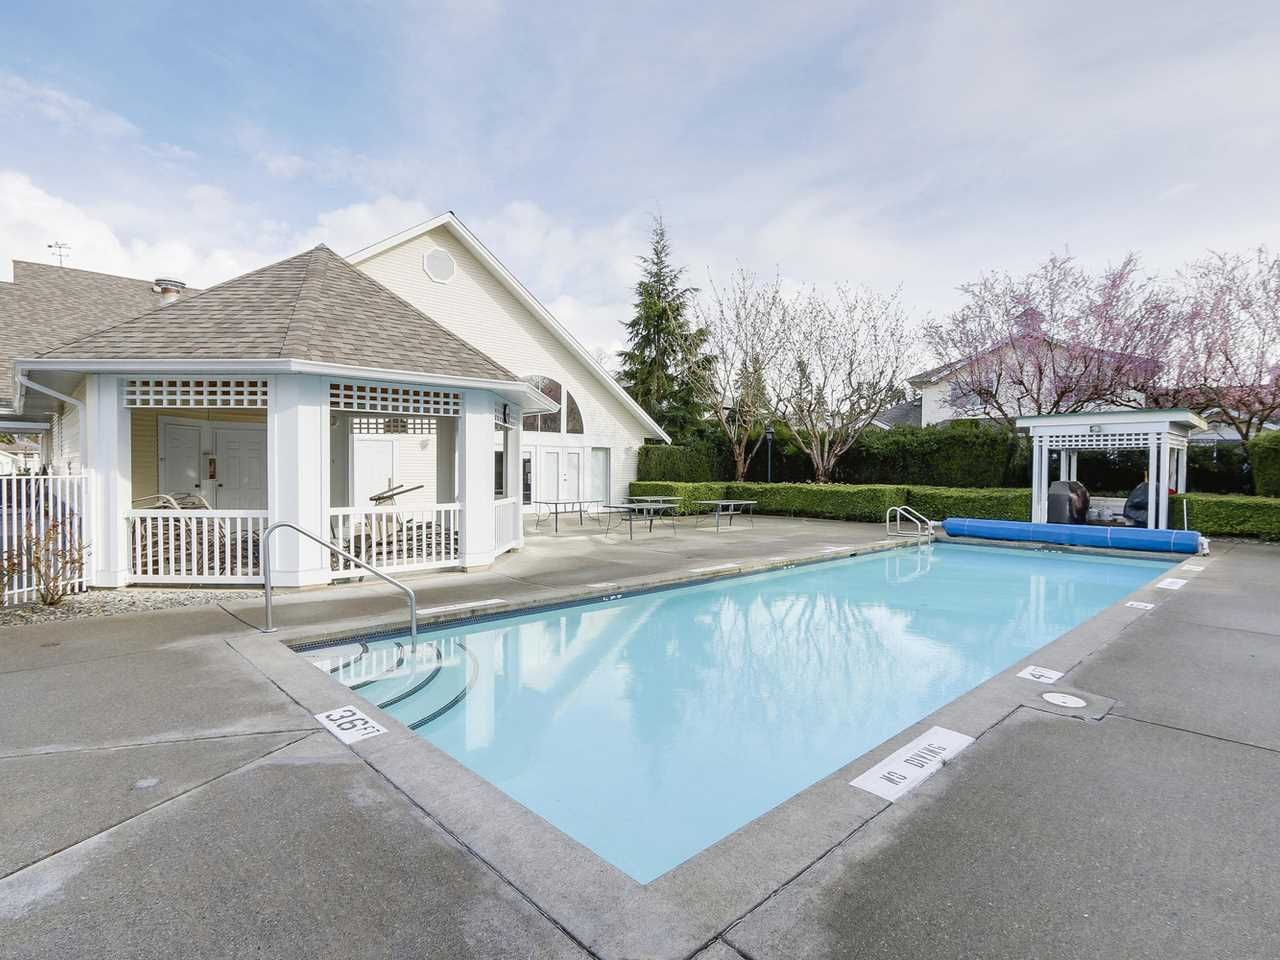 """Photo 14: Photos: 72 9208 208 Street in Langley: Walnut Grove Townhouse for sale in """"CHURCHILL PARK"""" : MLS®# R2155500"""